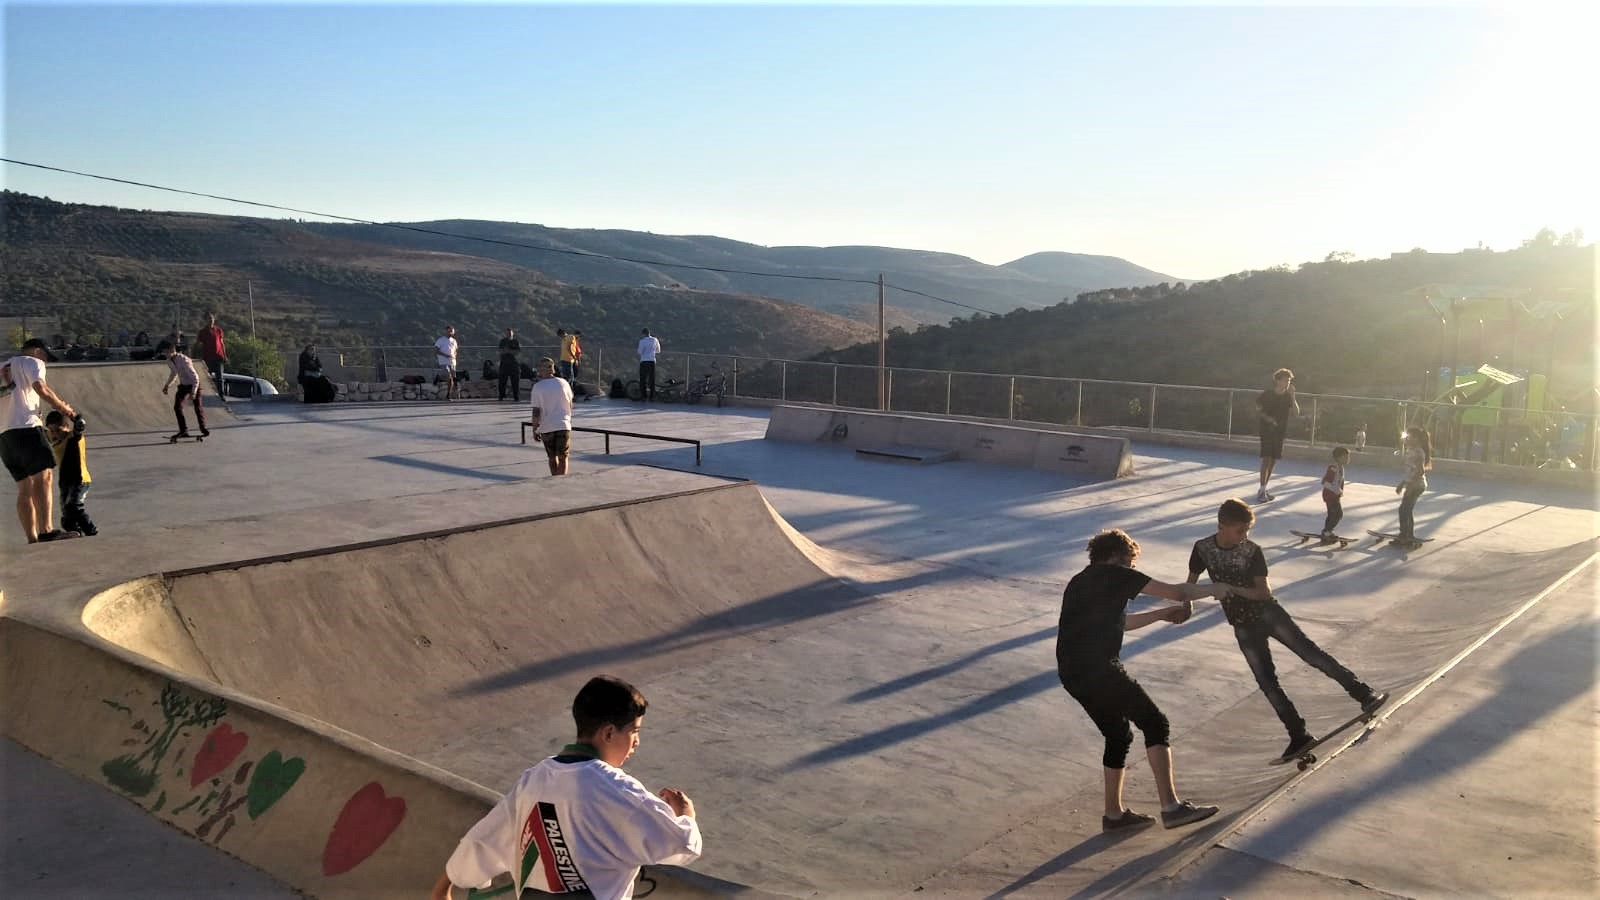 Two adventures in Palestine with SkatePAL